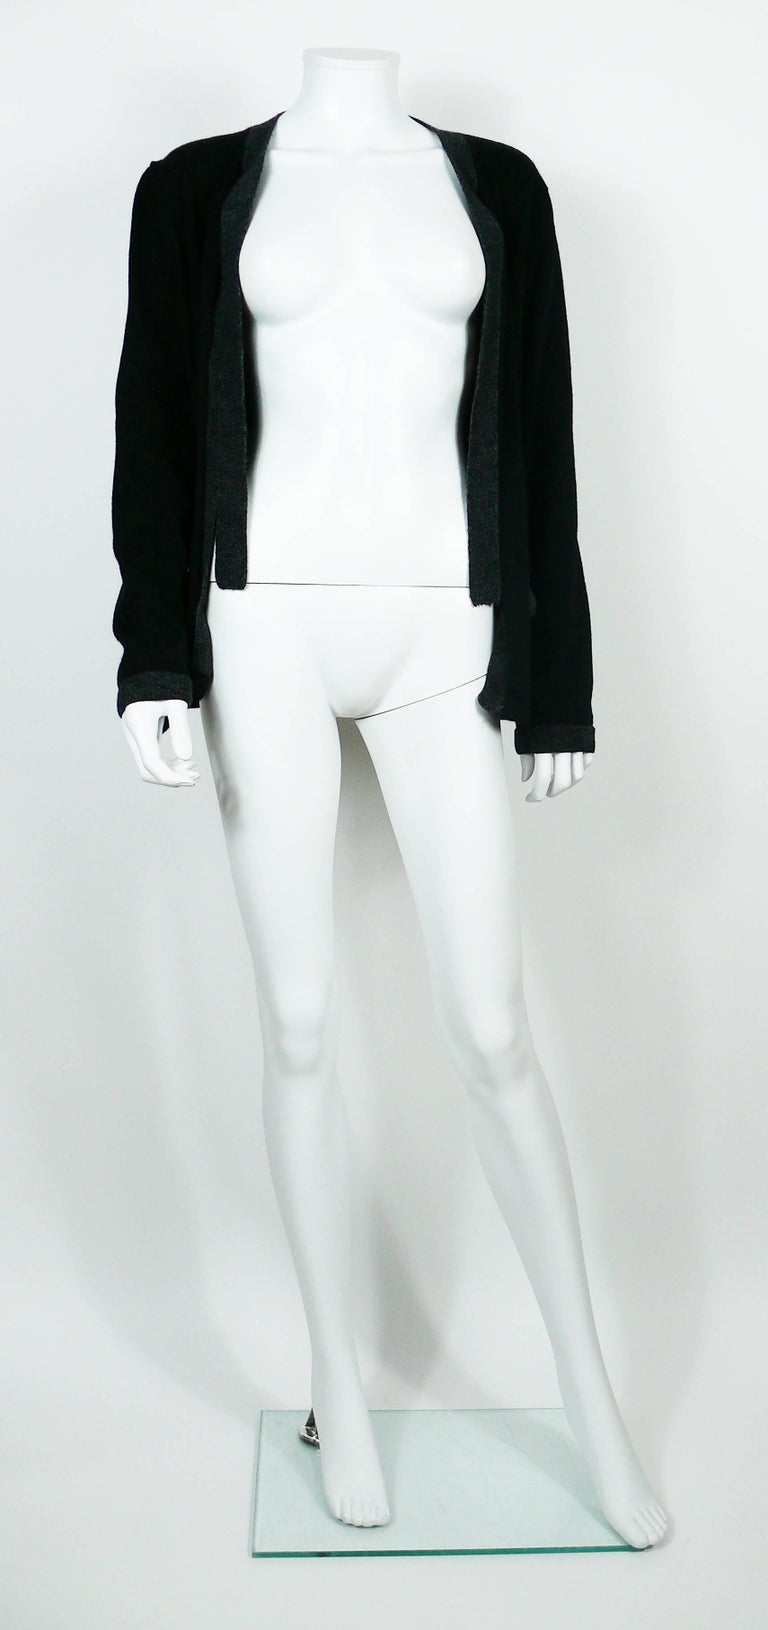 Chanel Employee Uniform Black Wool Cardigan with CC Logo Size XL For Sale 2